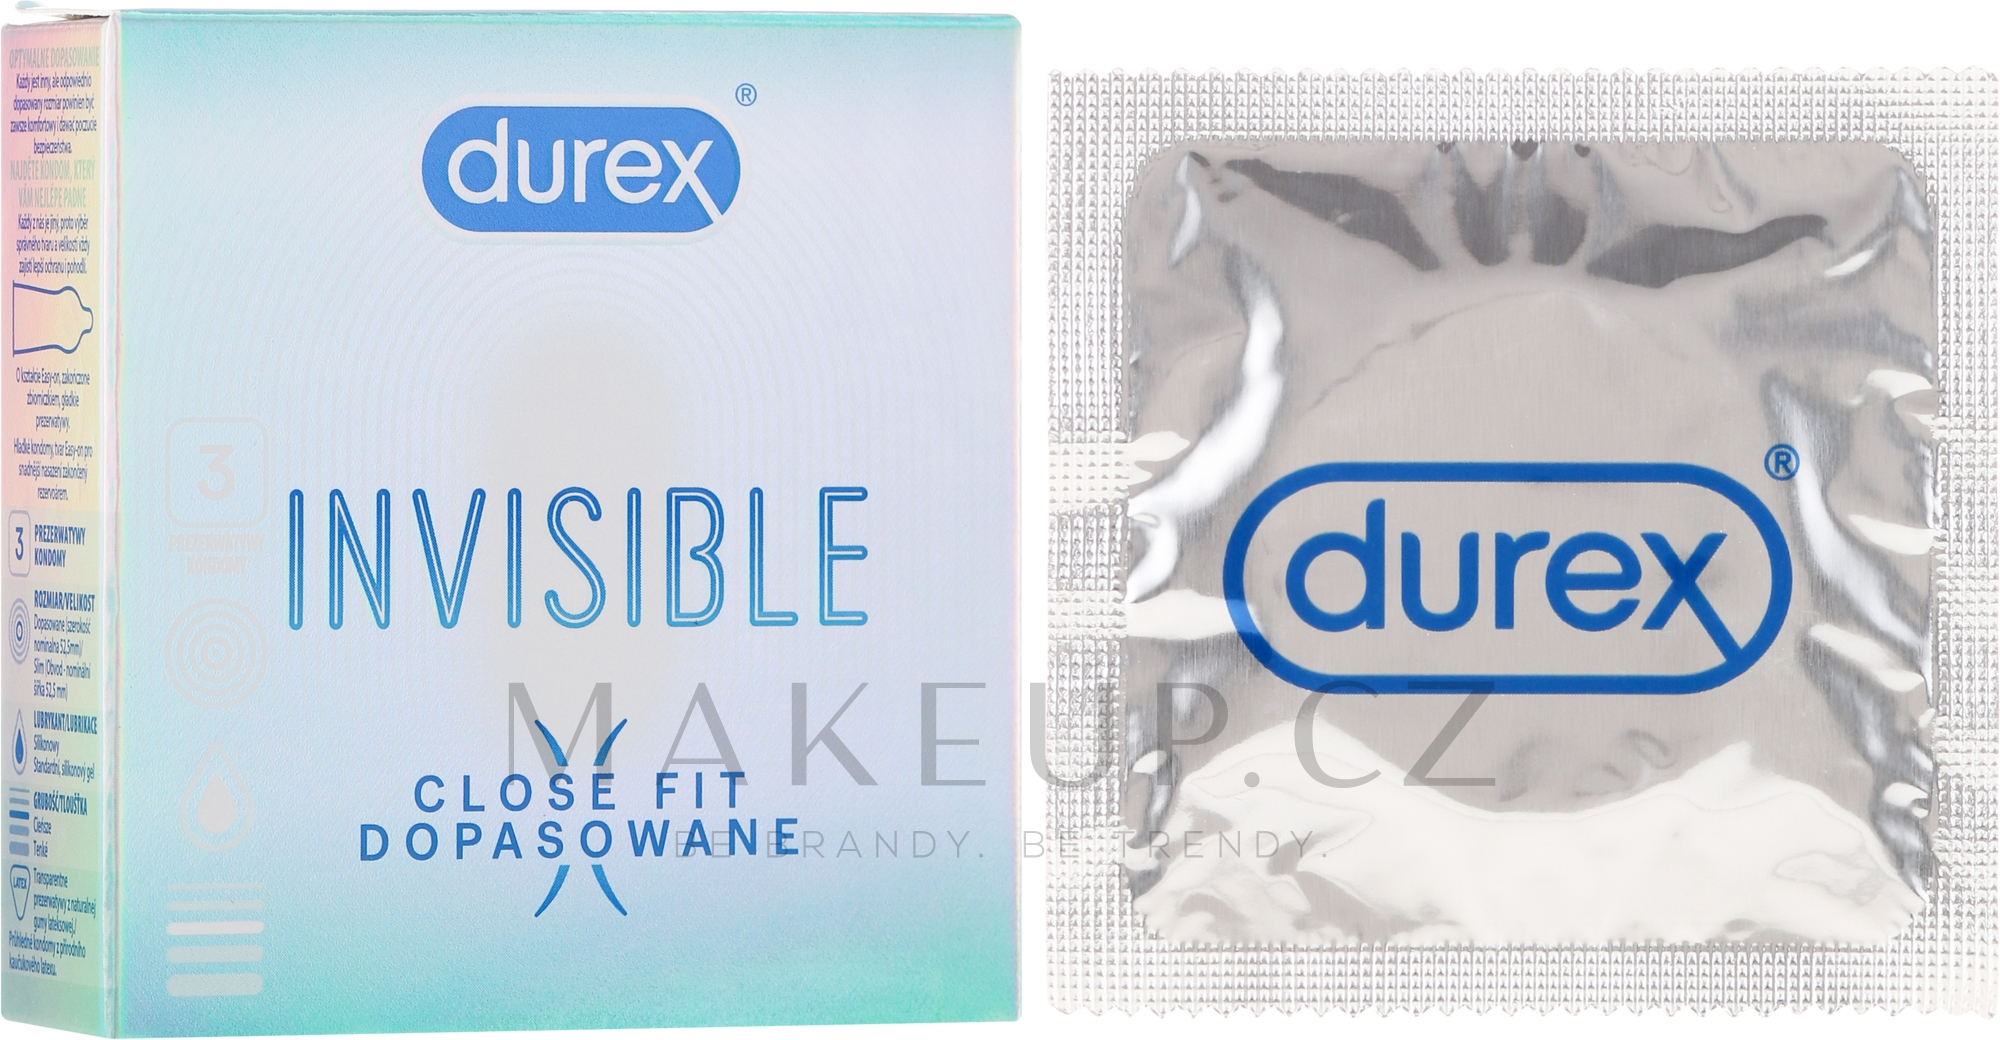 Kondomy 3 ks - Durex Invisible Close Fit — foto 3 ks.